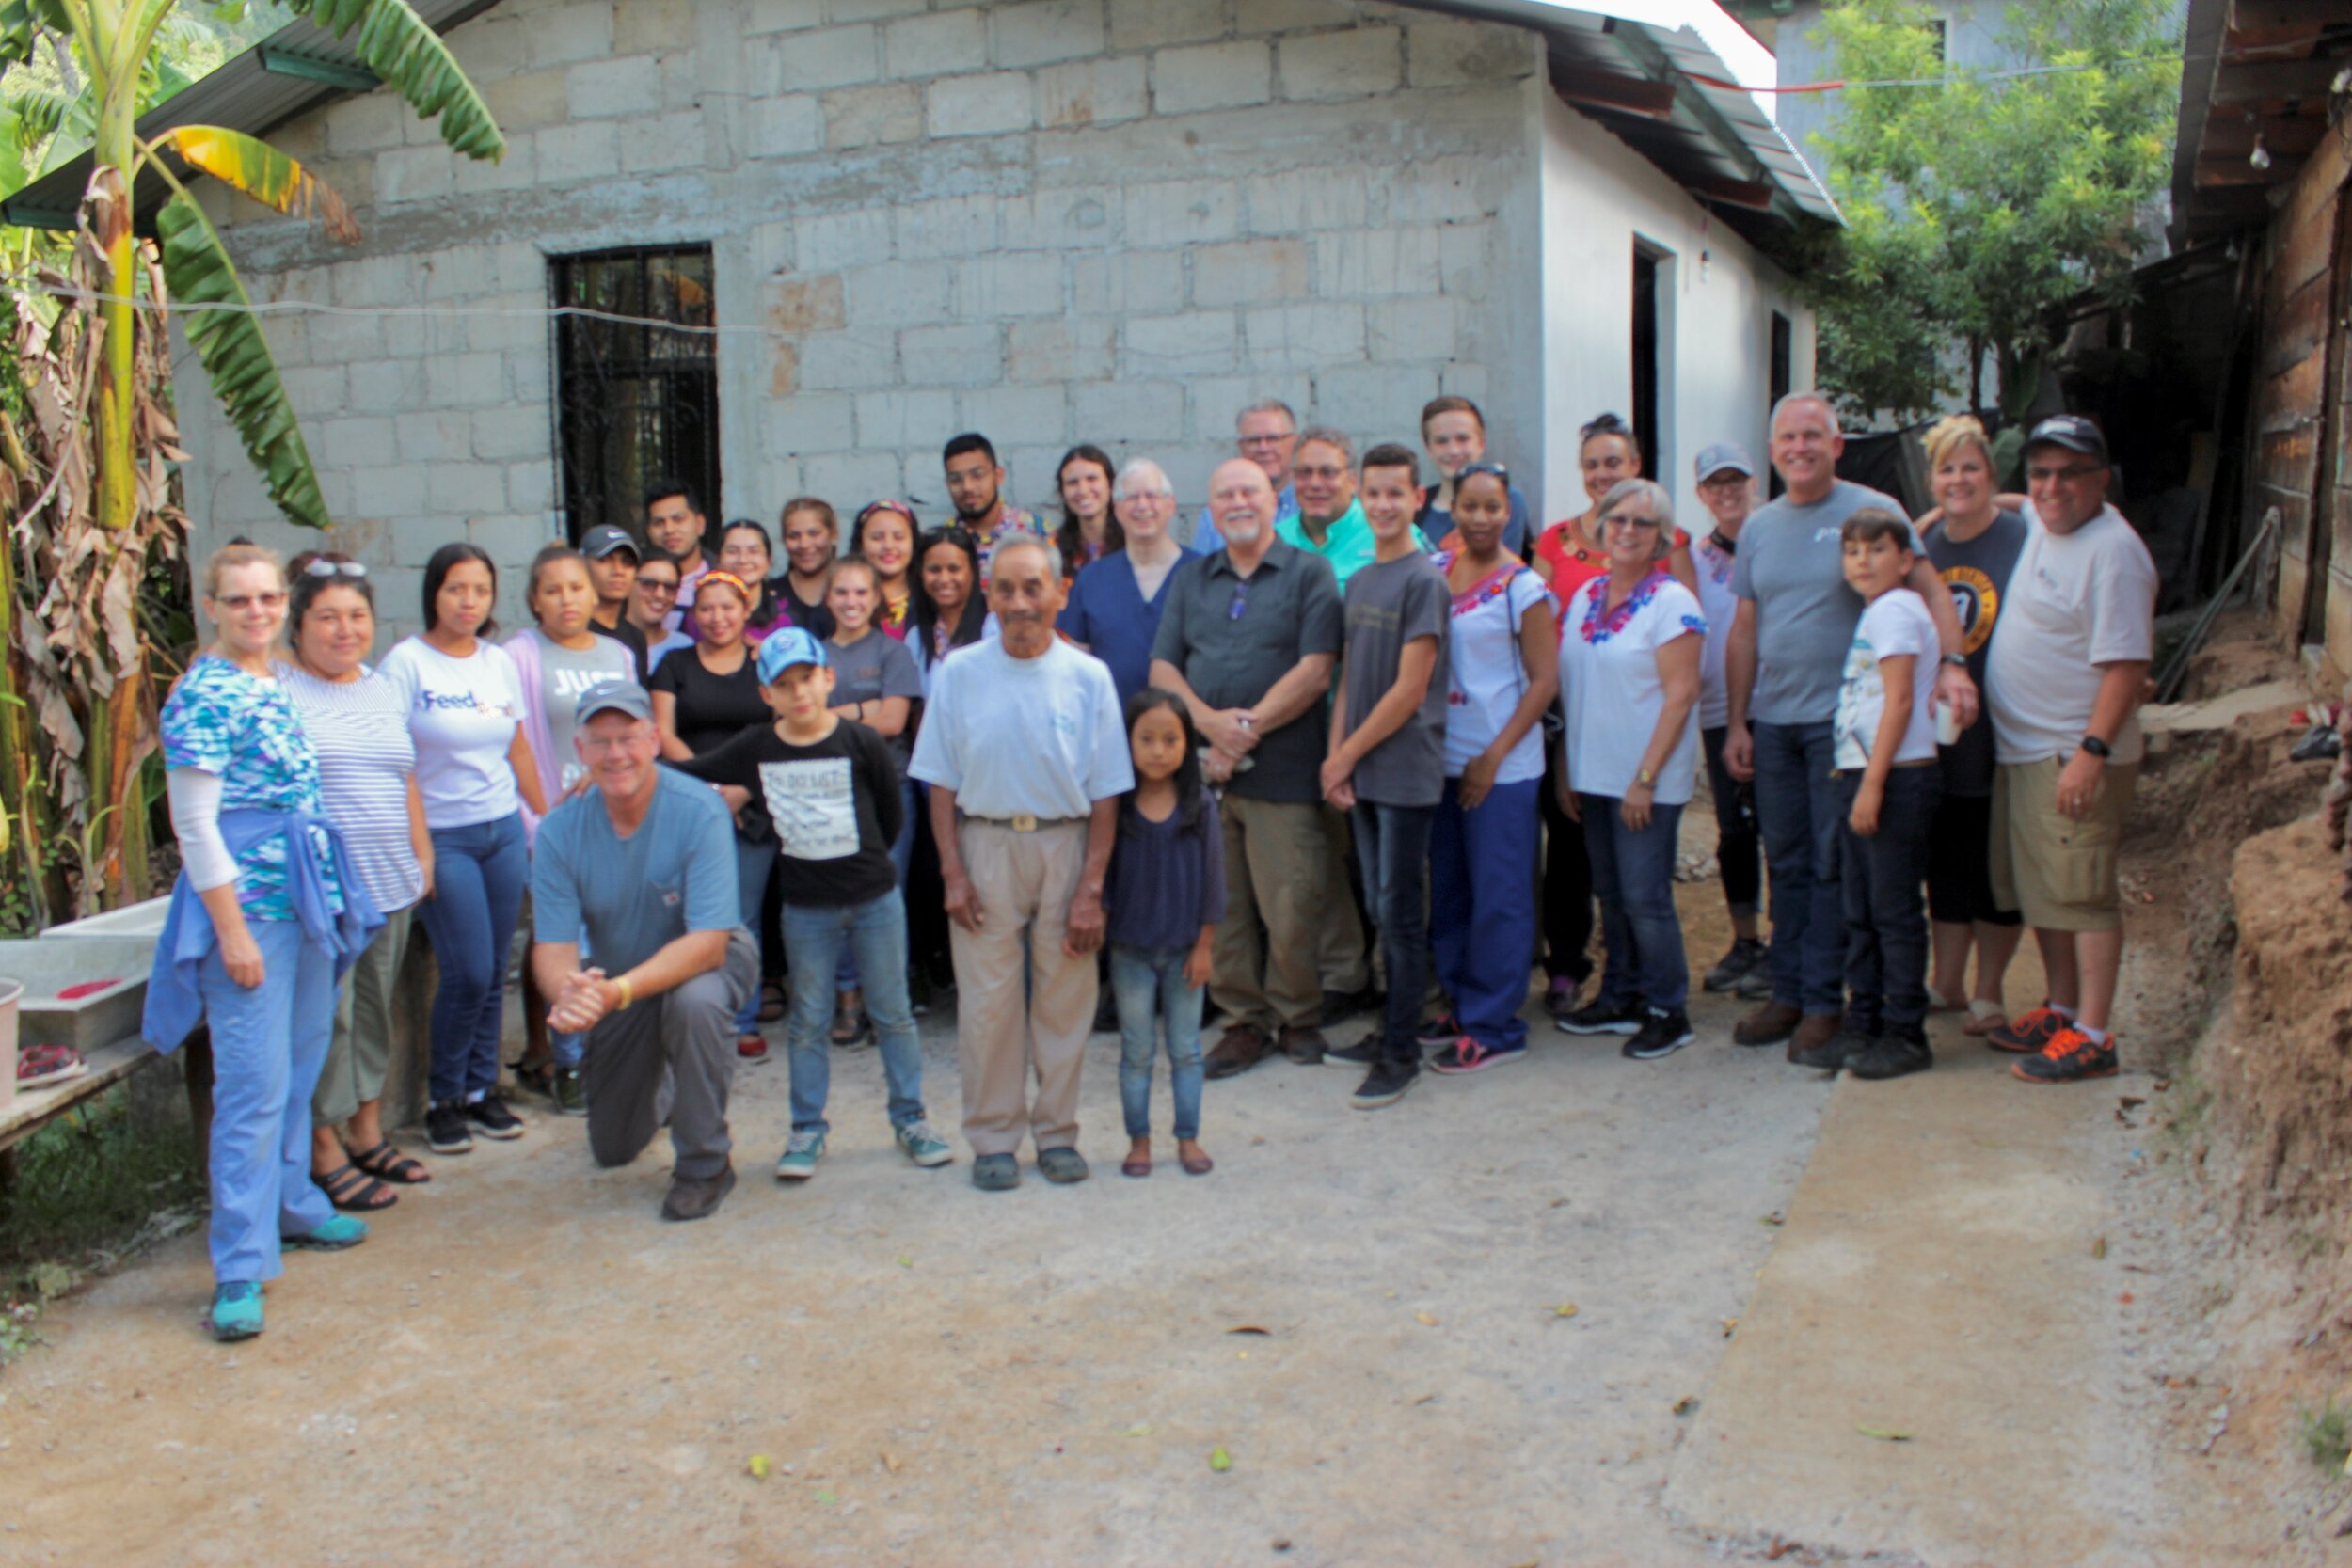 - Tomas, our first widower, can be seen in the white shirt in the center of this photo.